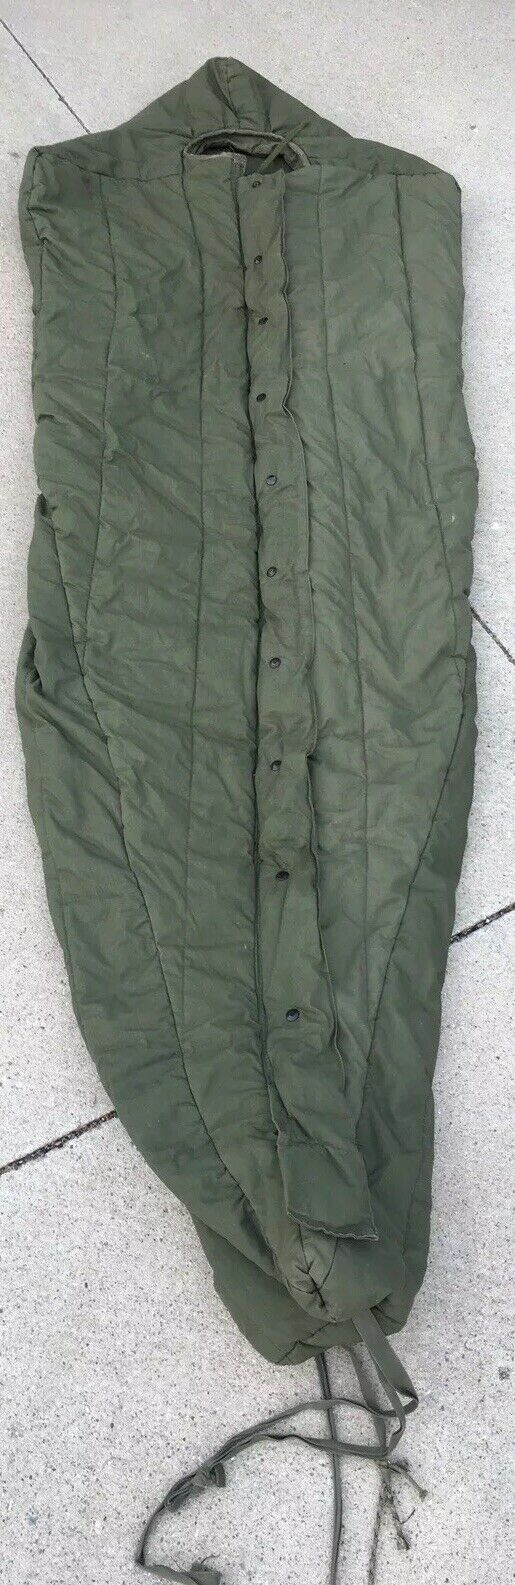 Vtg US Military Army Intermediate Cold Weather Mummy Sleeping Bag W/ Hood